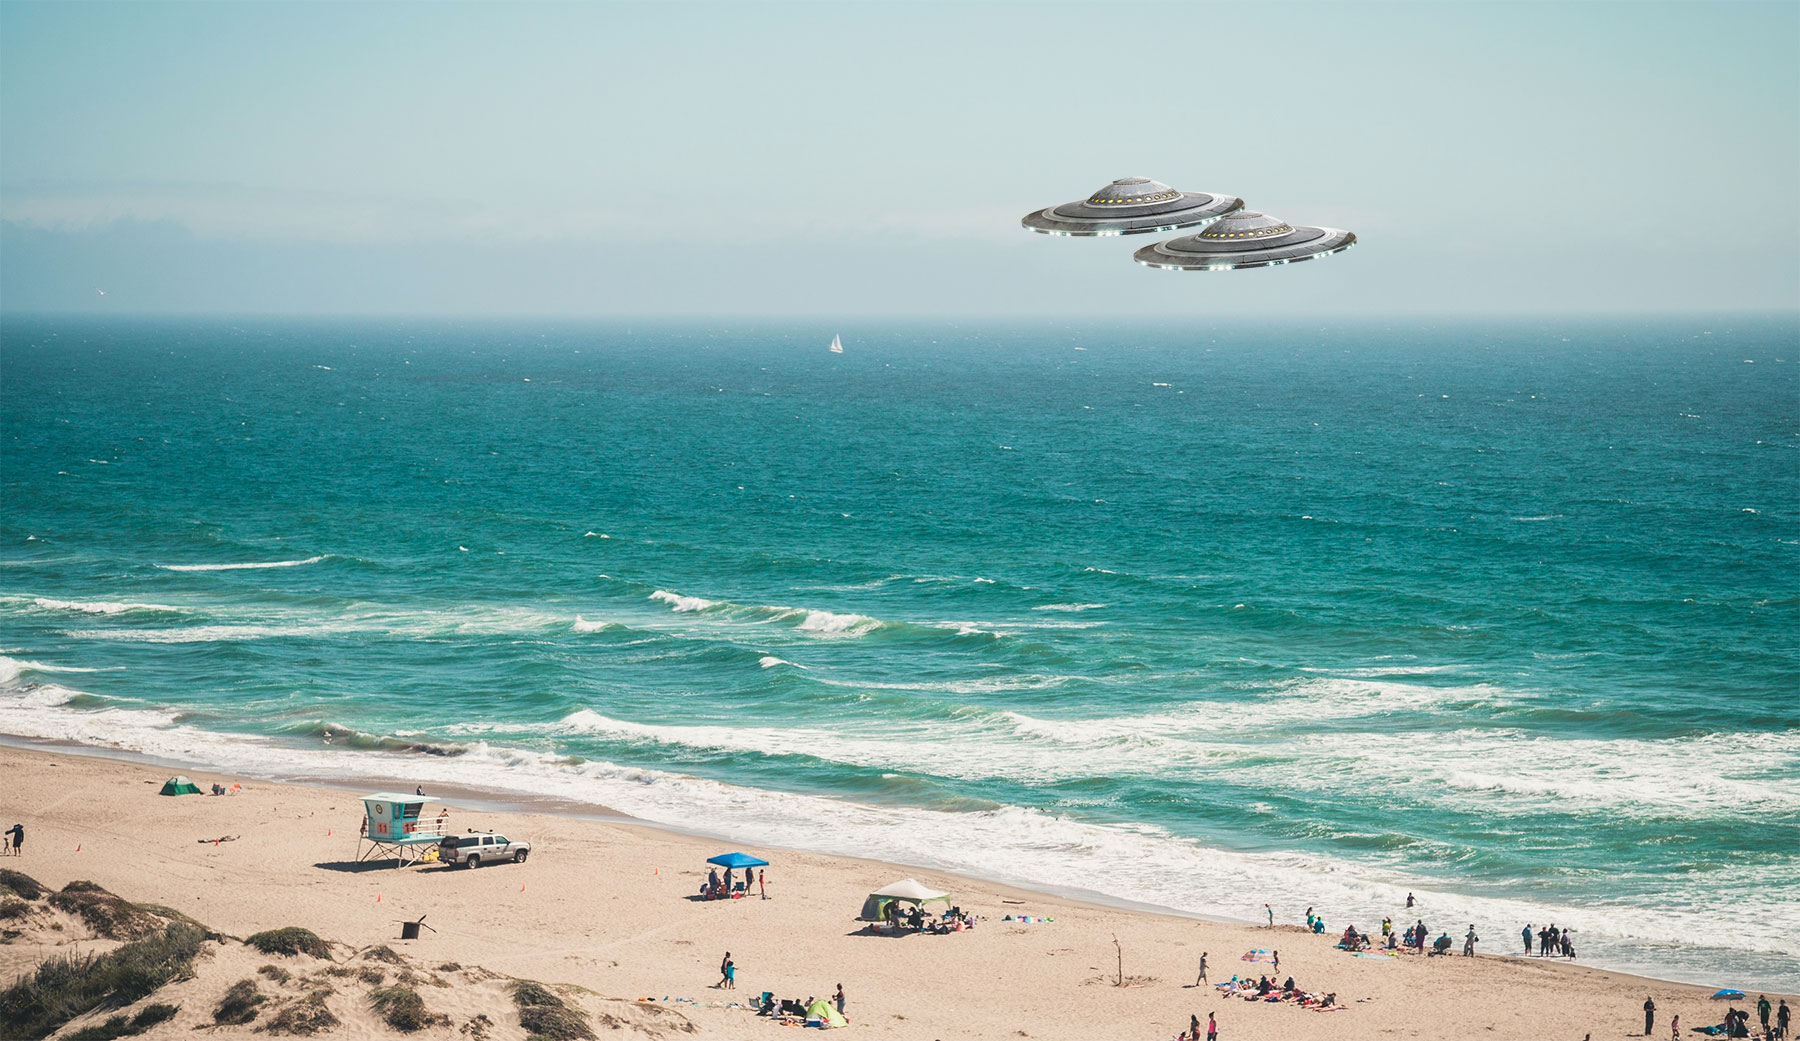 An artist's drawing of two UFOs over Manresa Beach, California.